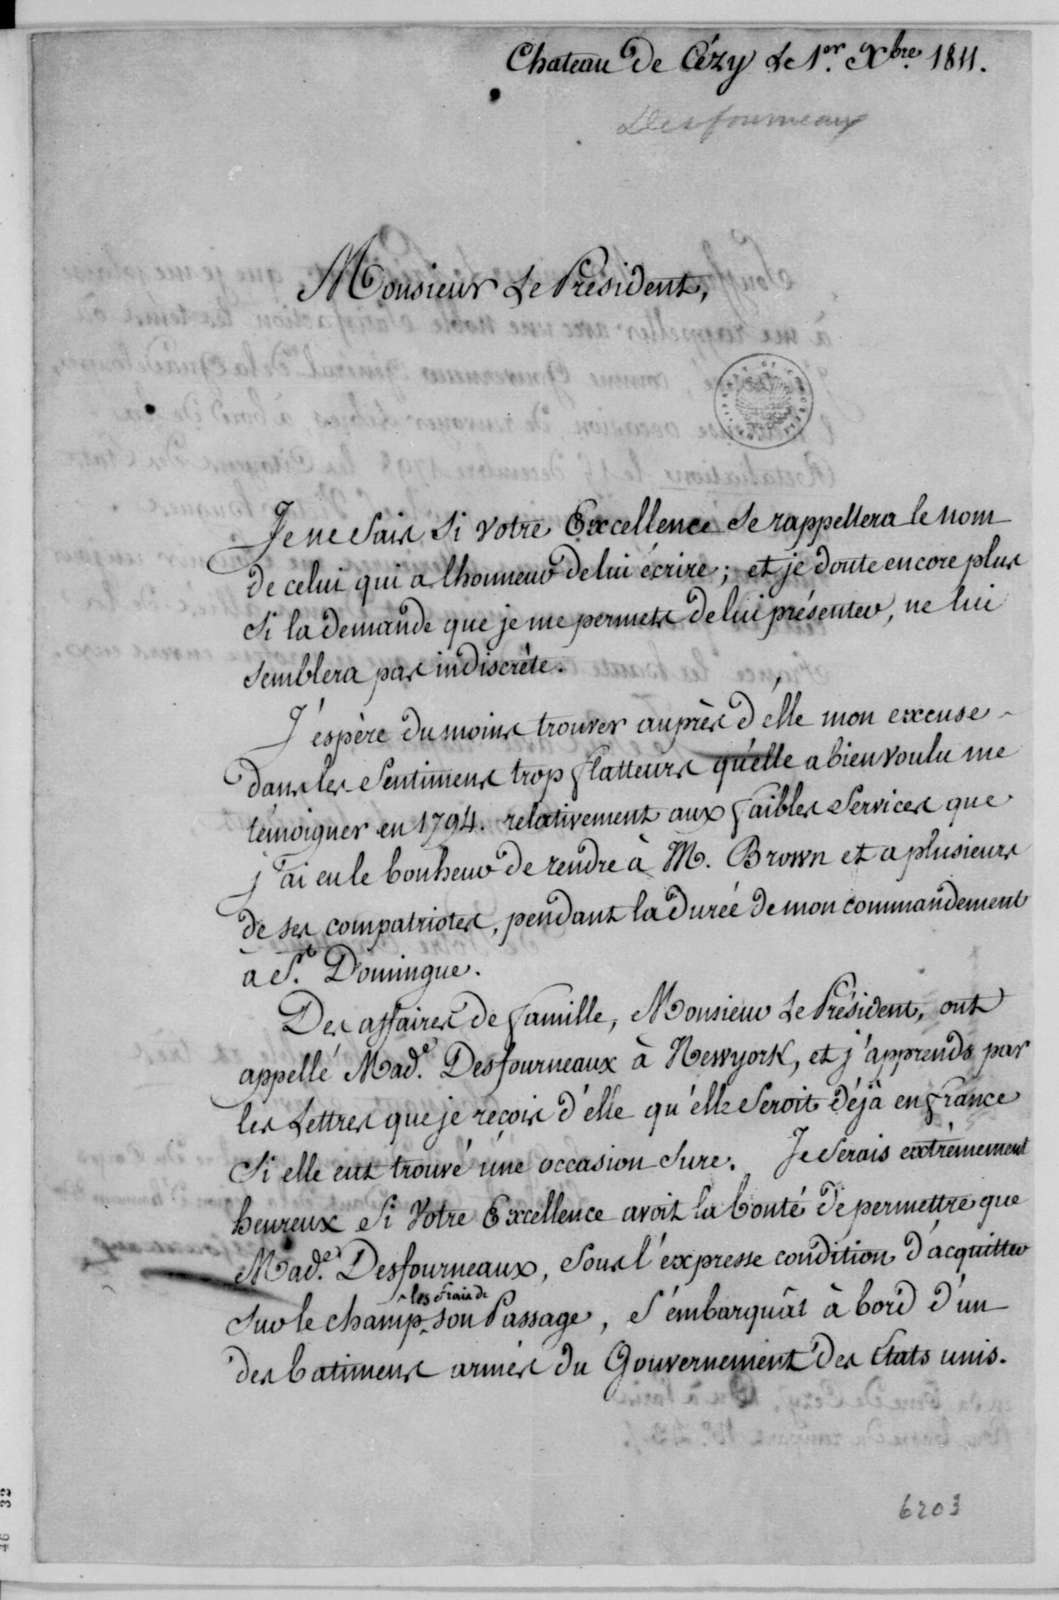 Desfourneaux to James Madison, December 1, 1811. In French.